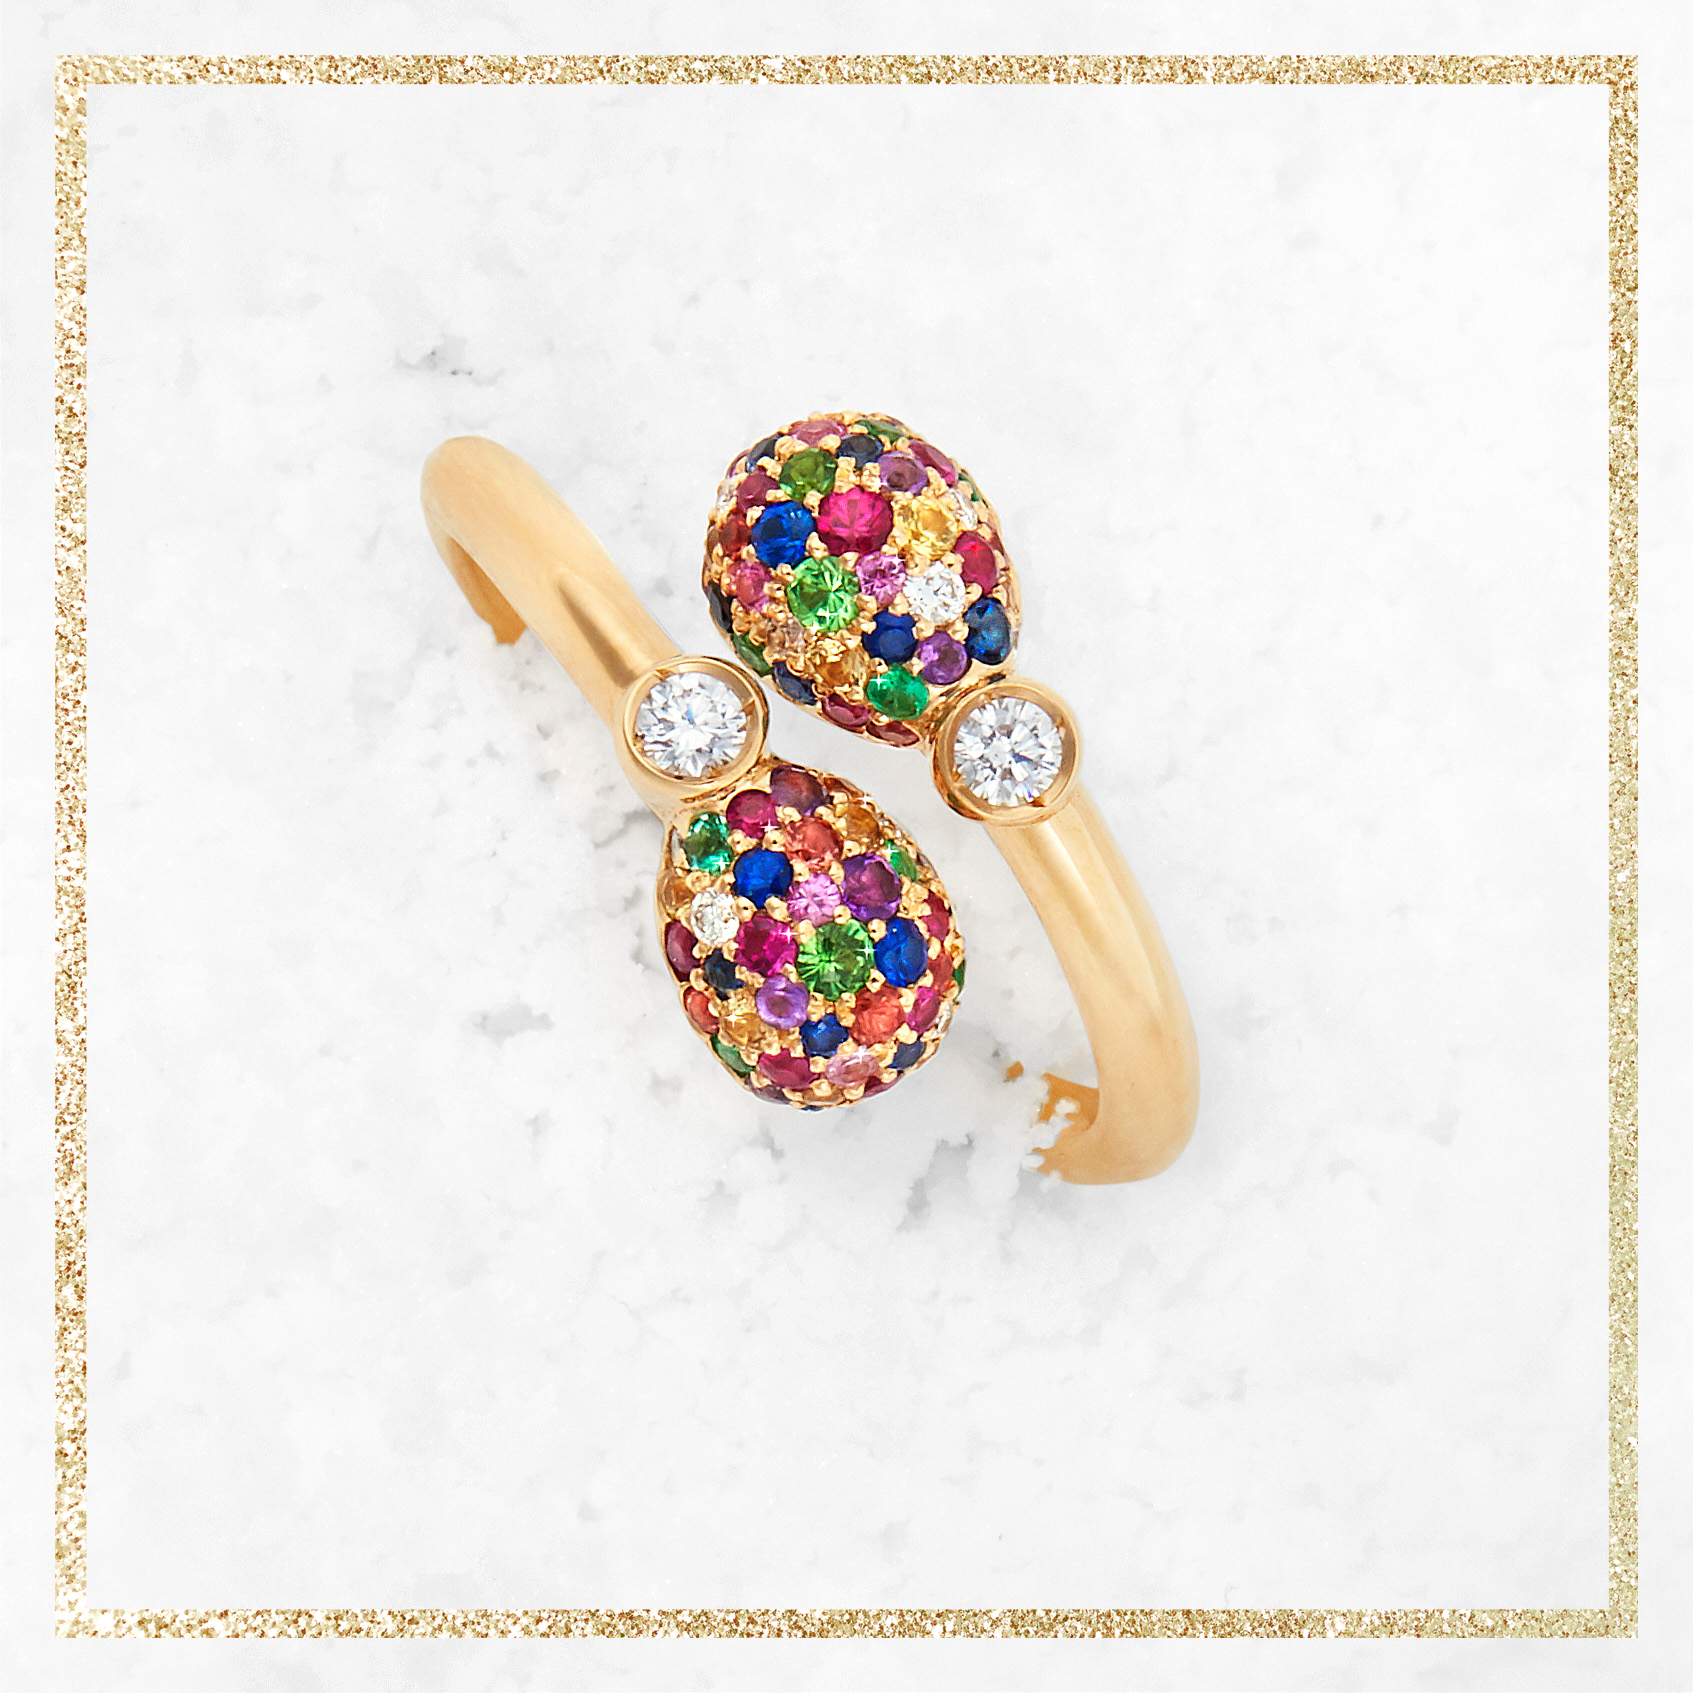 FABERGÉ EMOTION MULTI-COLOURED CROSSOVER RING